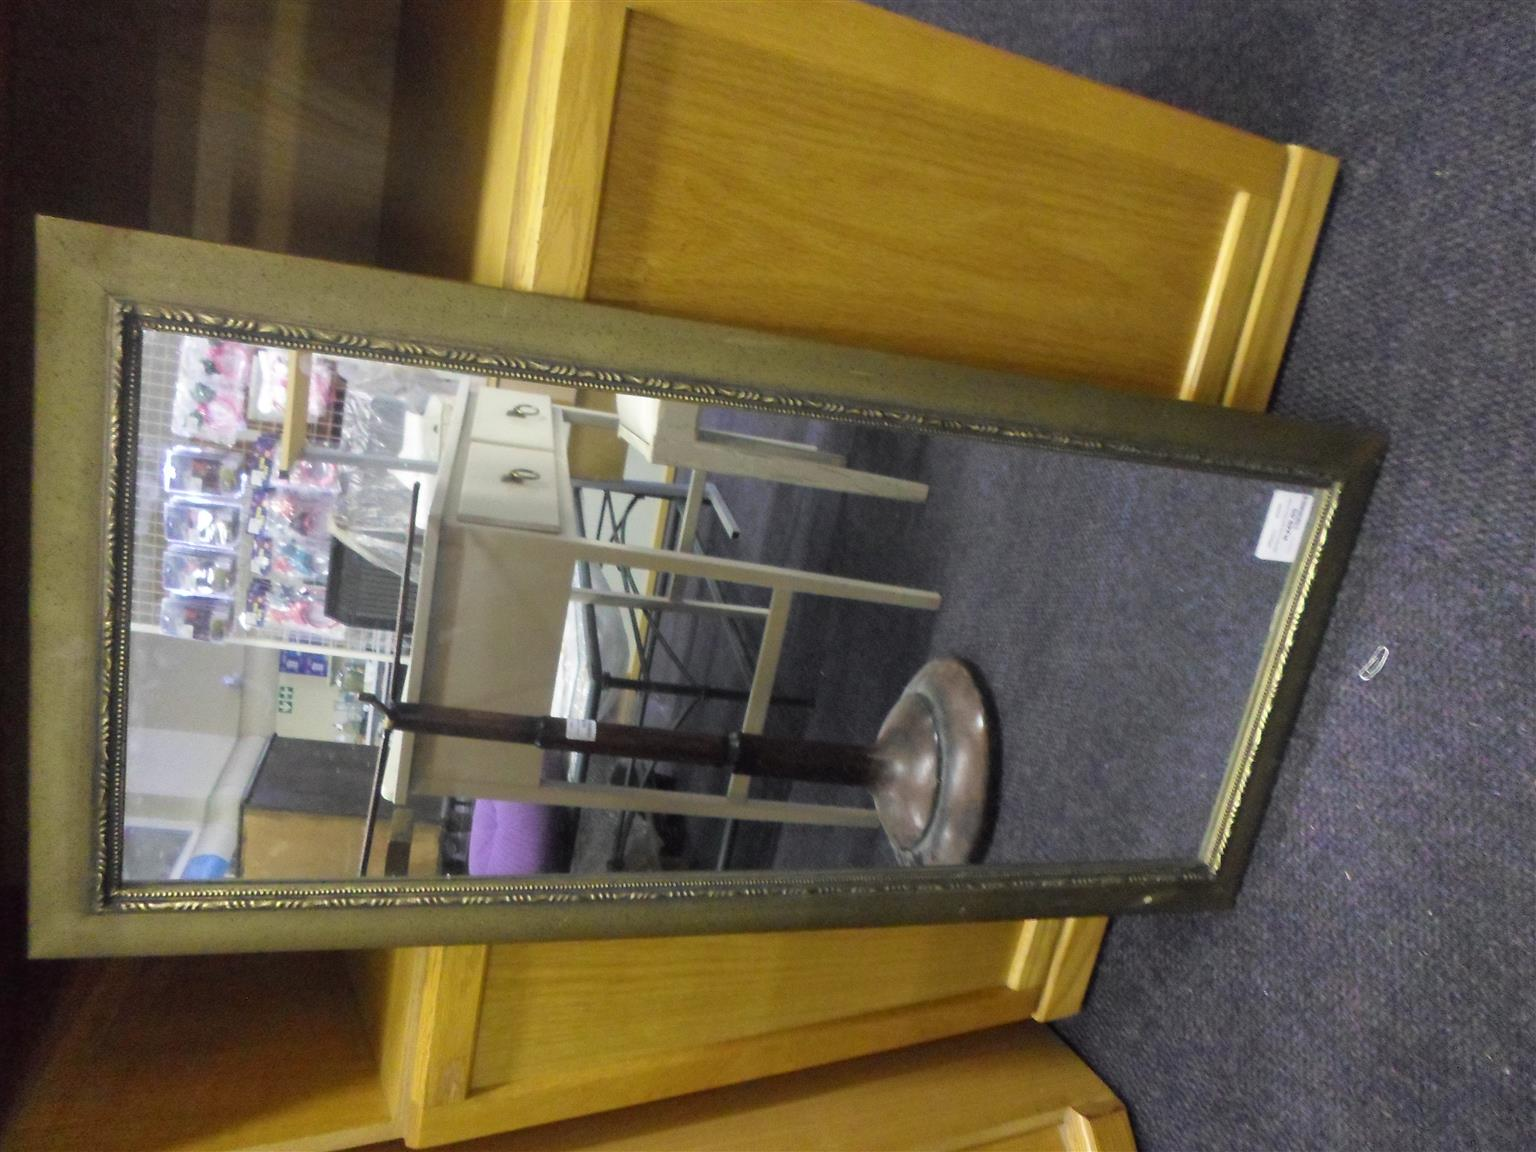 Upright Golden Frame Mirror